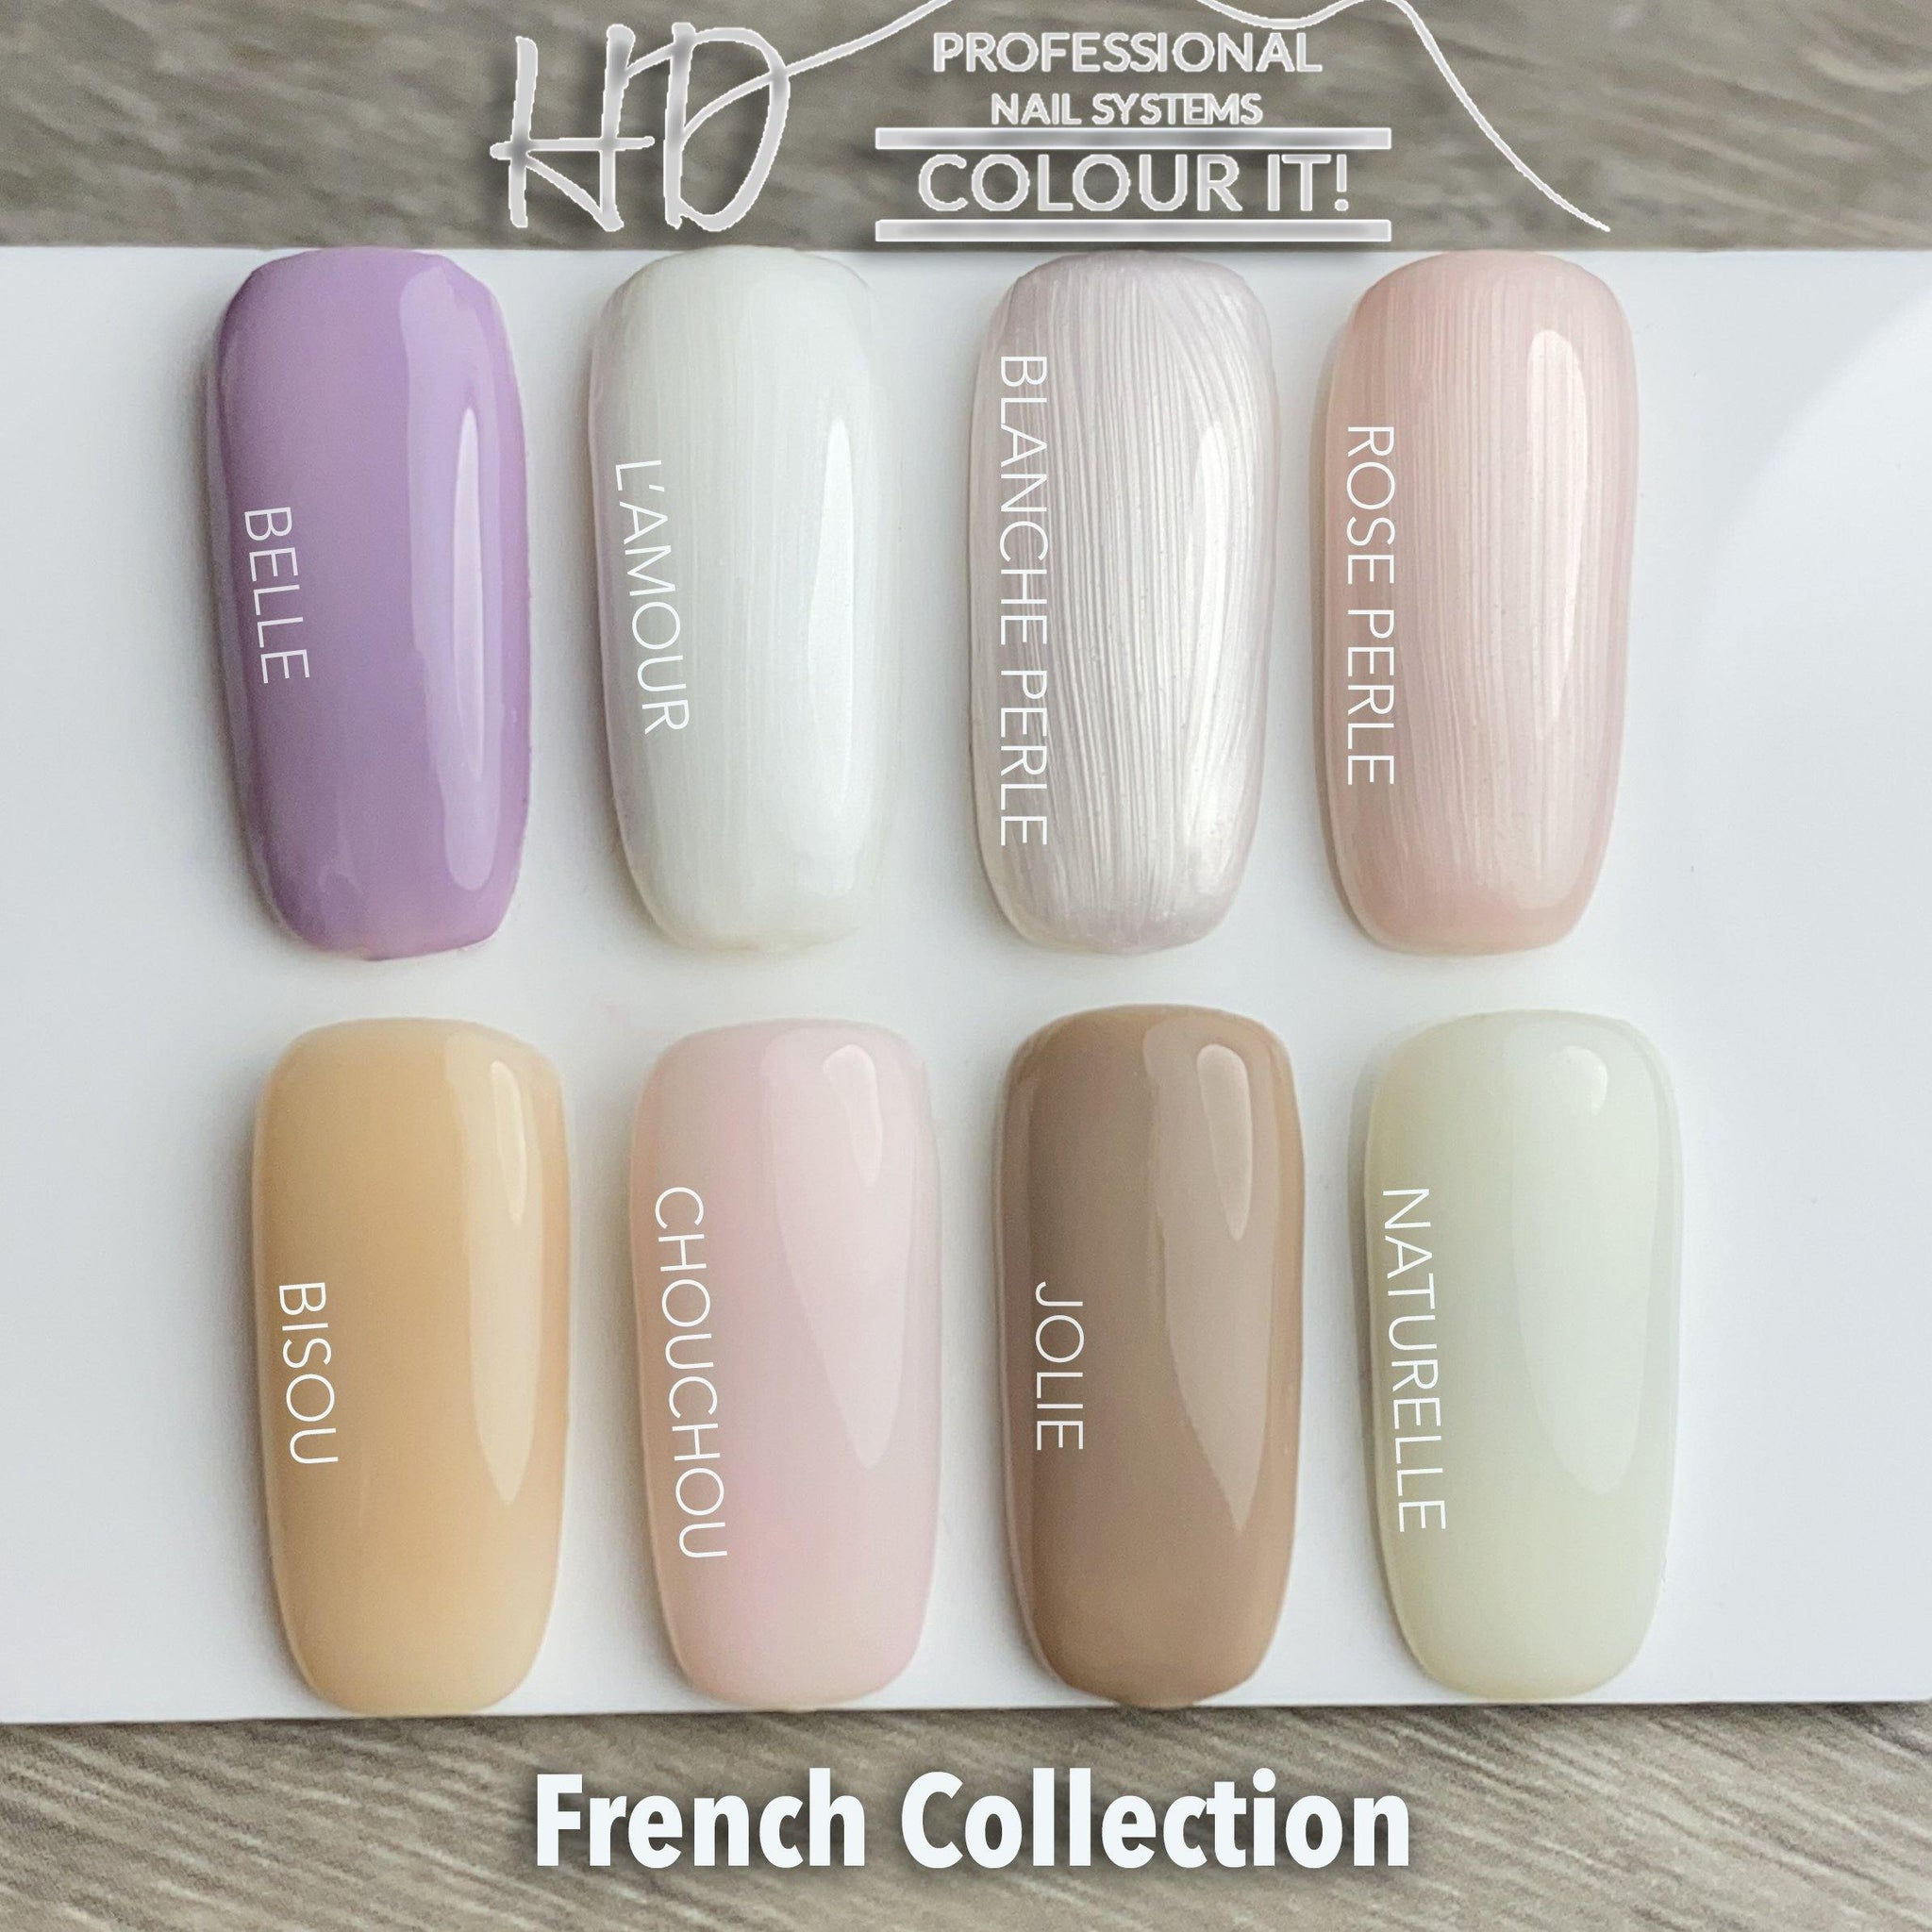 HD Colour It! French Collection (all 8 colors 15ml)